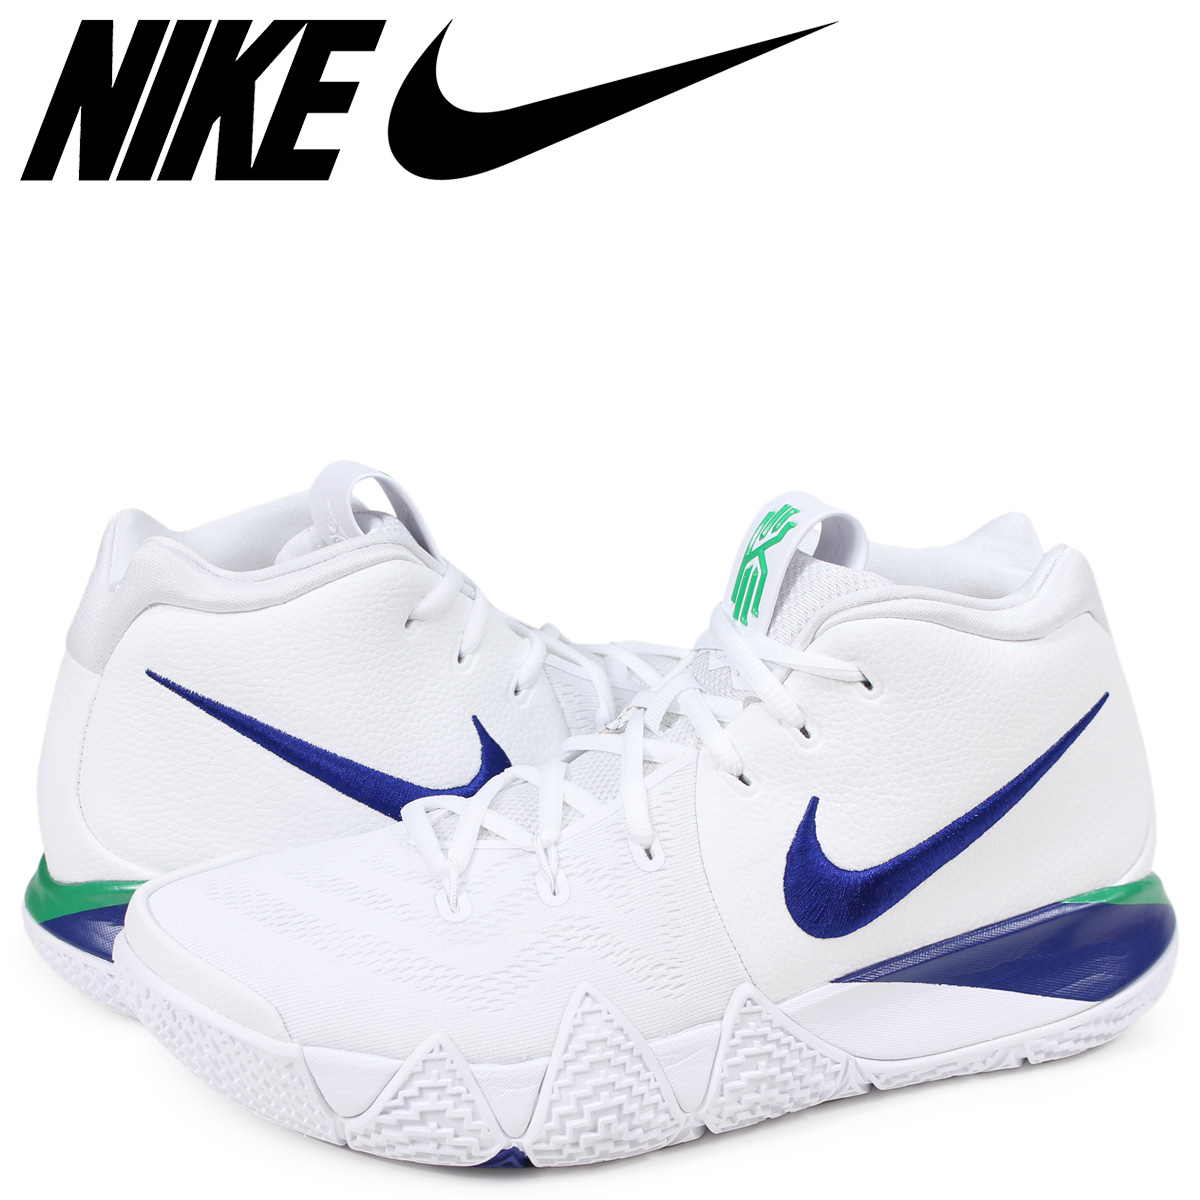 super popular 3a534 7af3e NIKE KYRIE 4 EP Nike chi Lee 4 sneakers men 943,807-103 white [186]